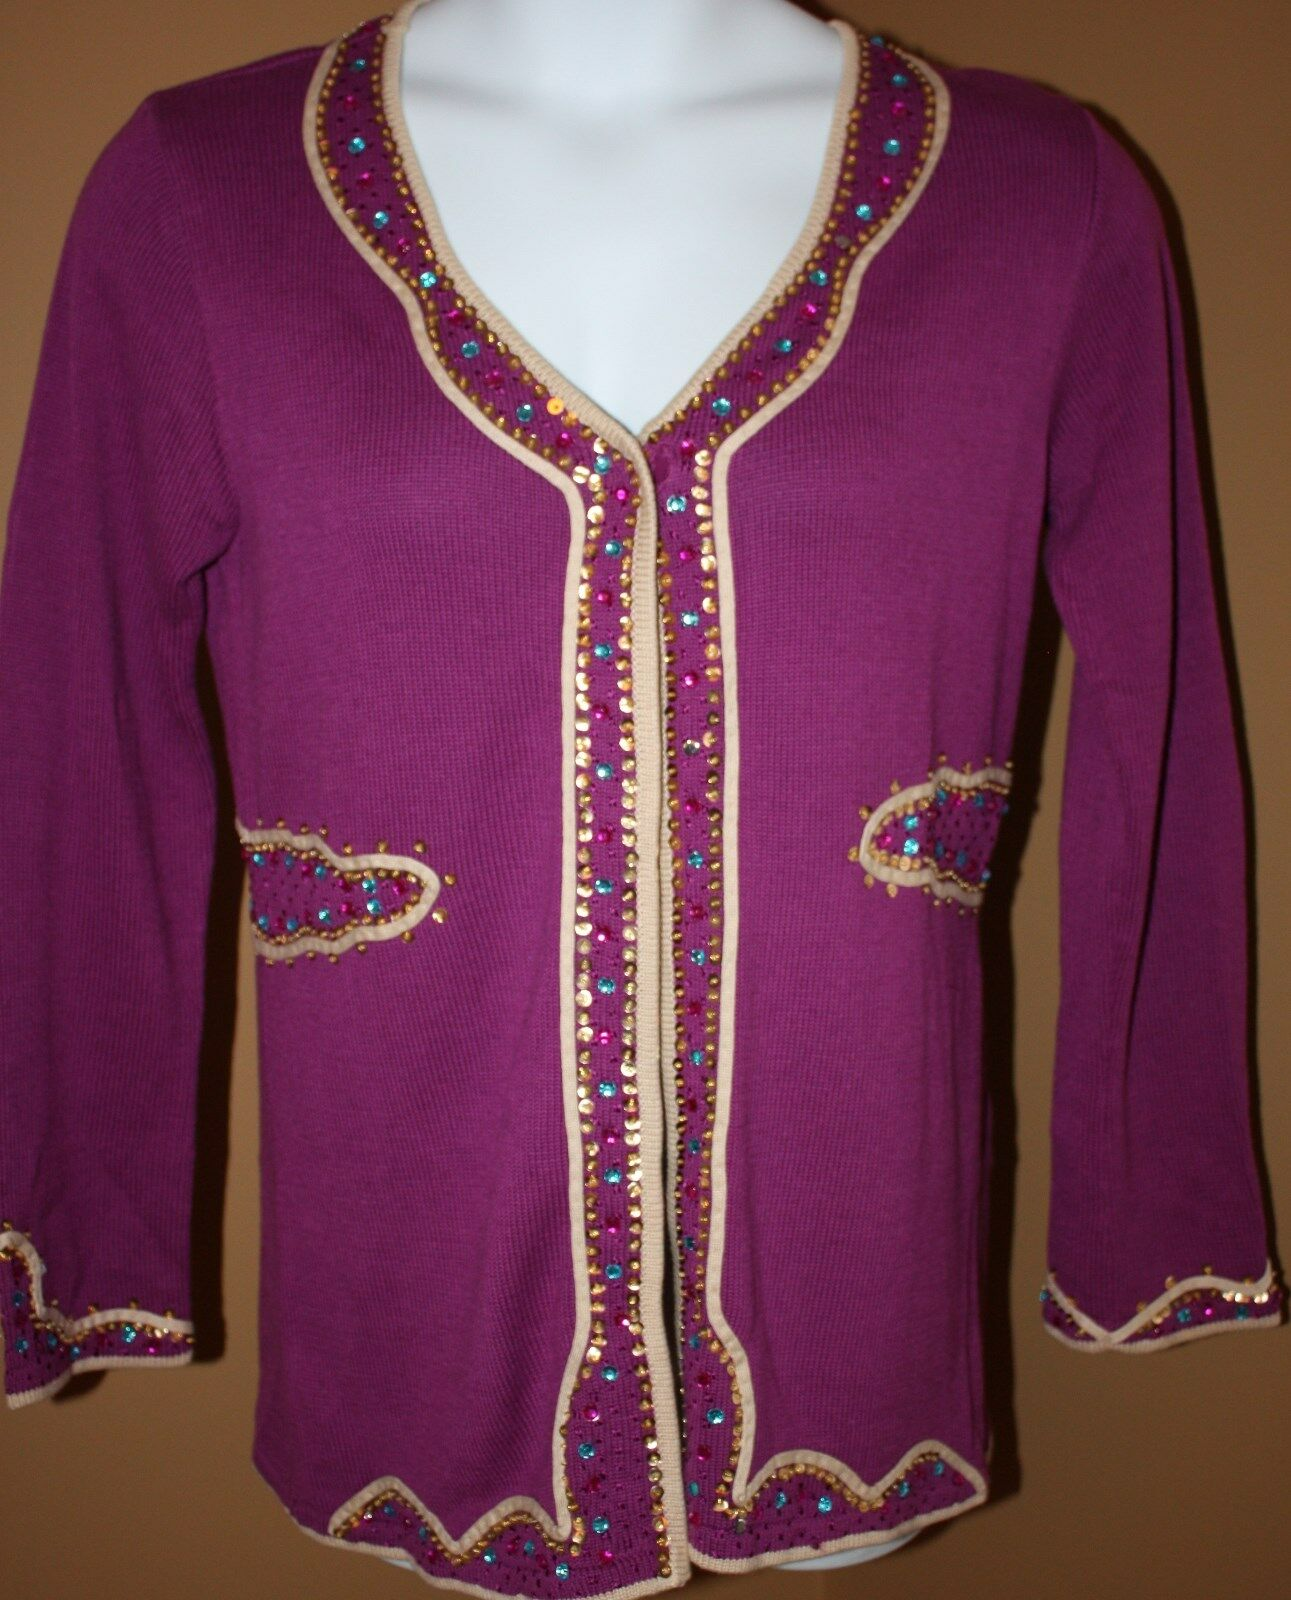 STORYBOOK KNITS Magenta Beaded EASTERN OPULENT LS Sweater M